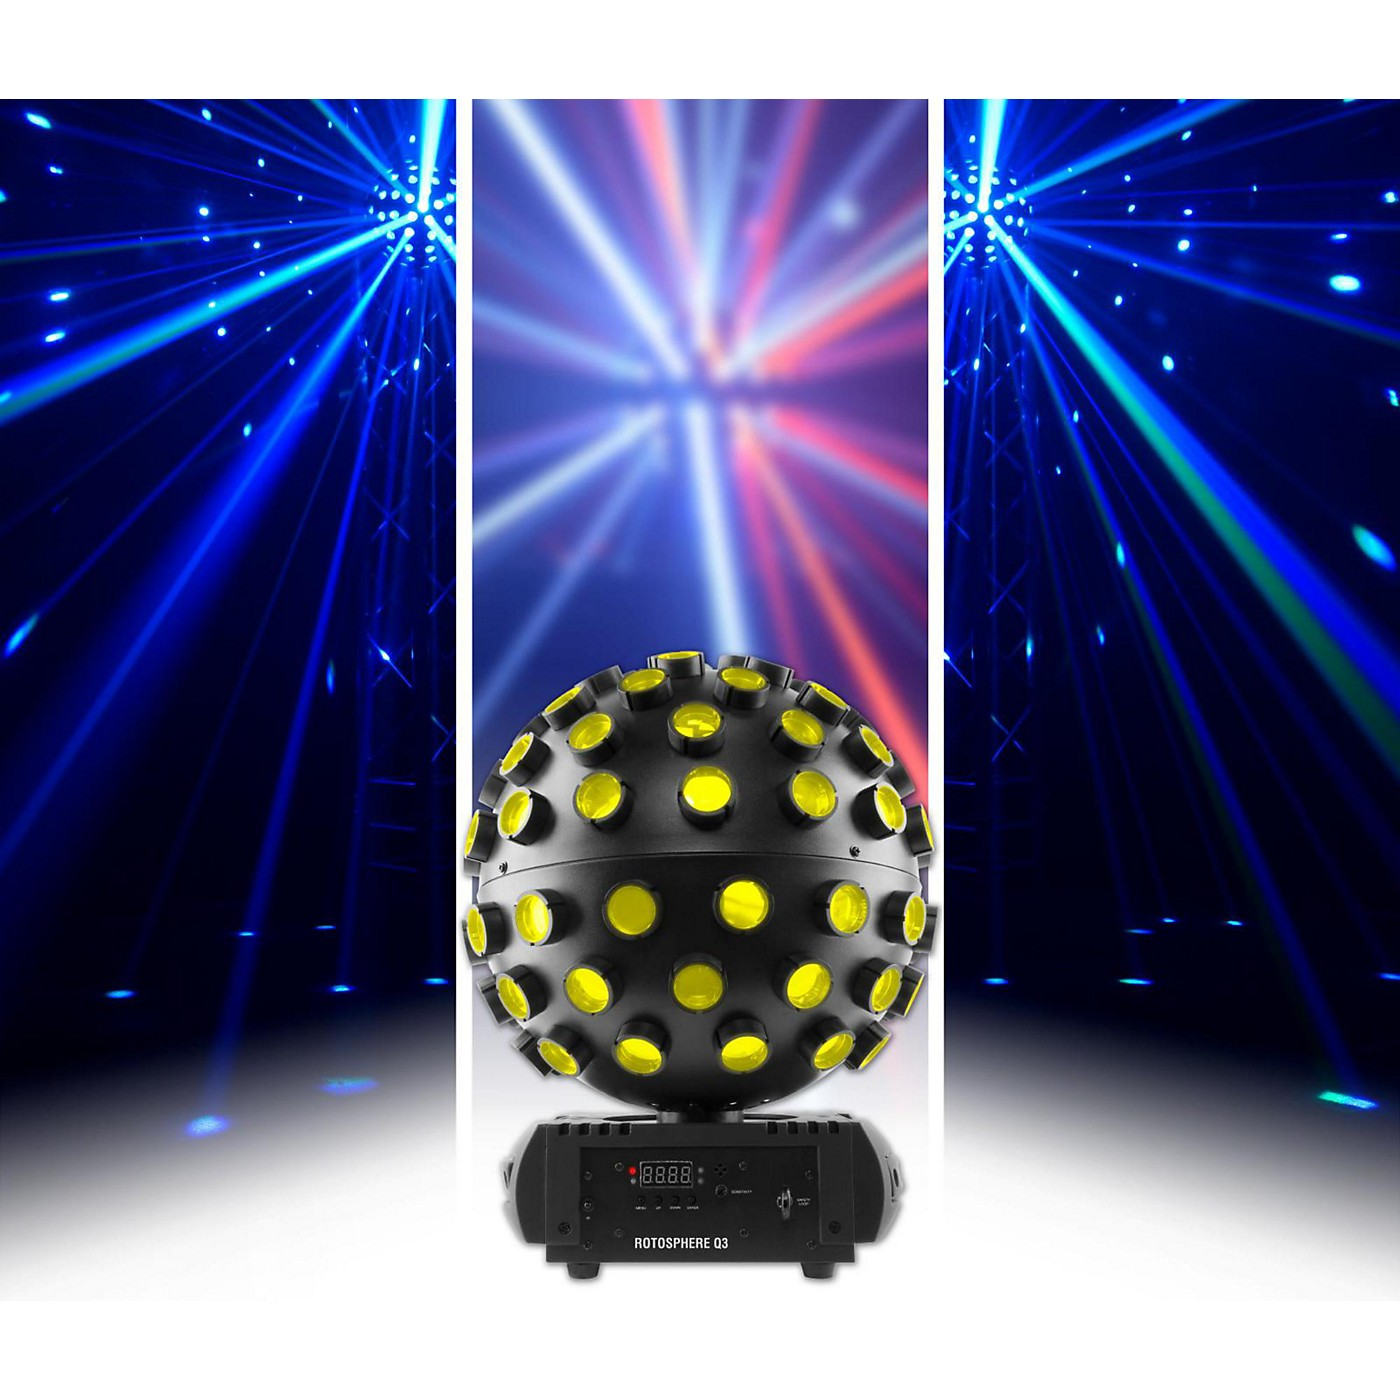 CHAUVET DJ Rotosphere Q3 Disco Effect Light thumbnail